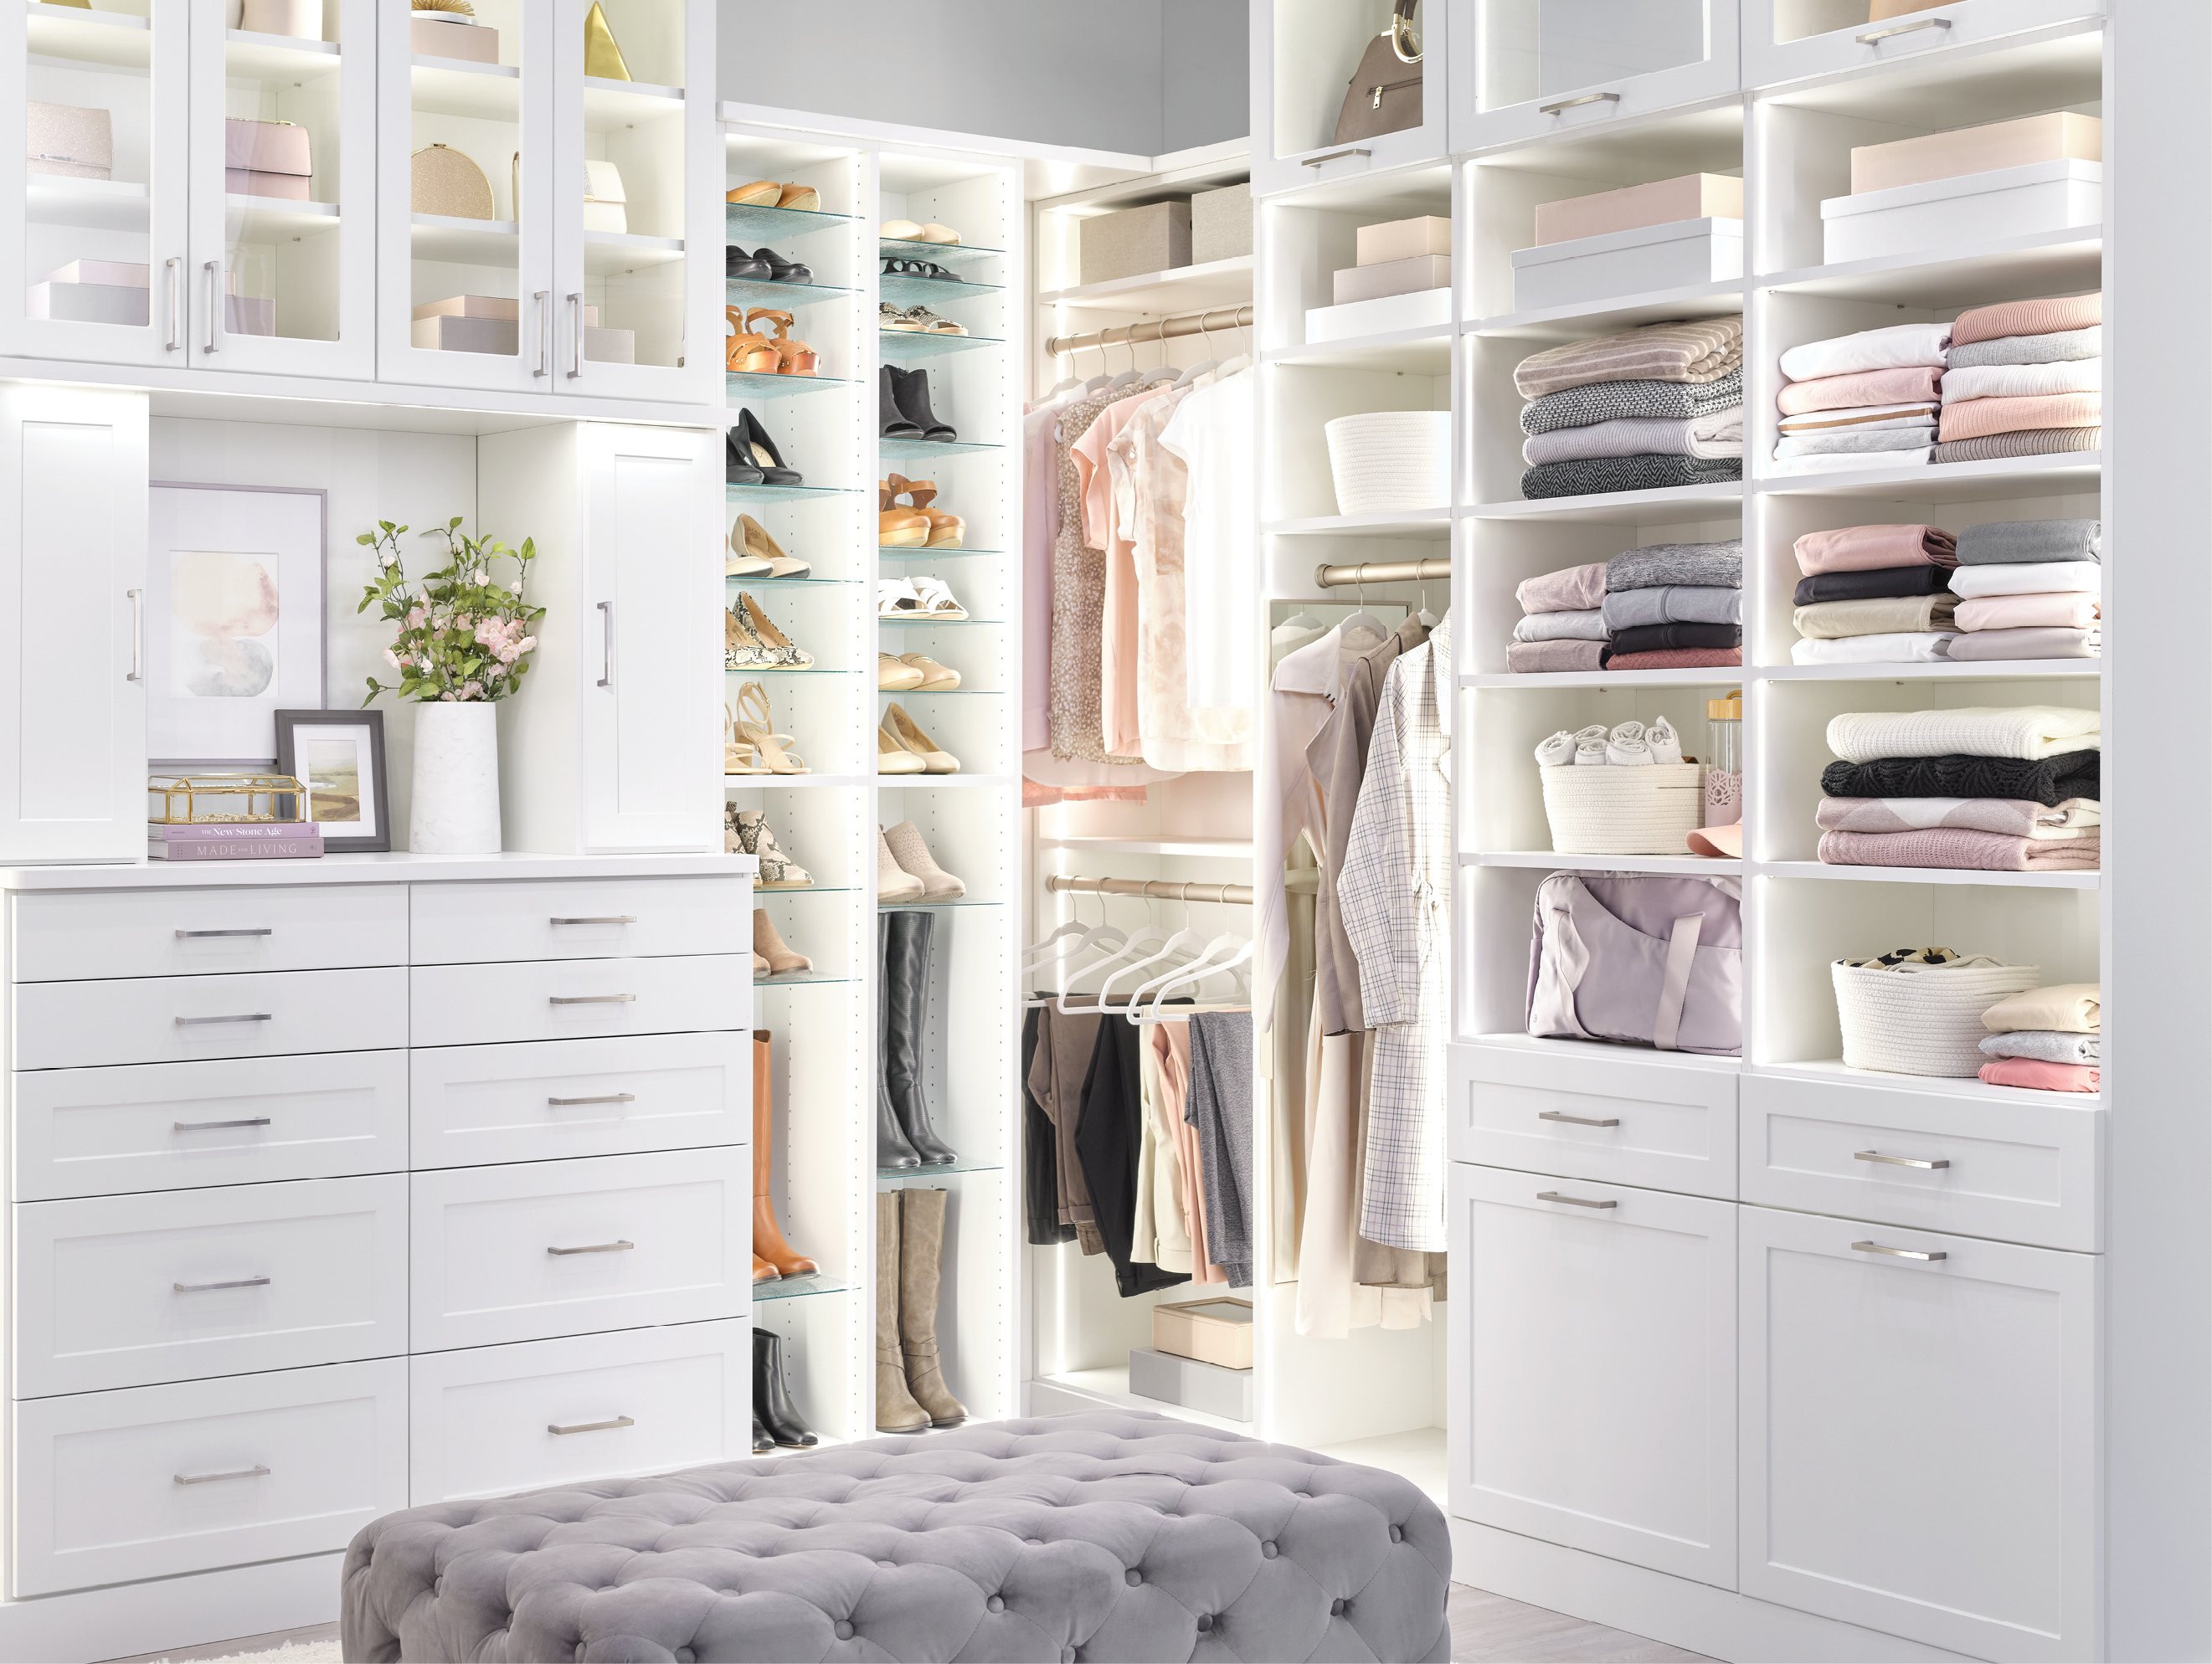 Custom lighting for places like your custom walk-in closet from Inspired Closets